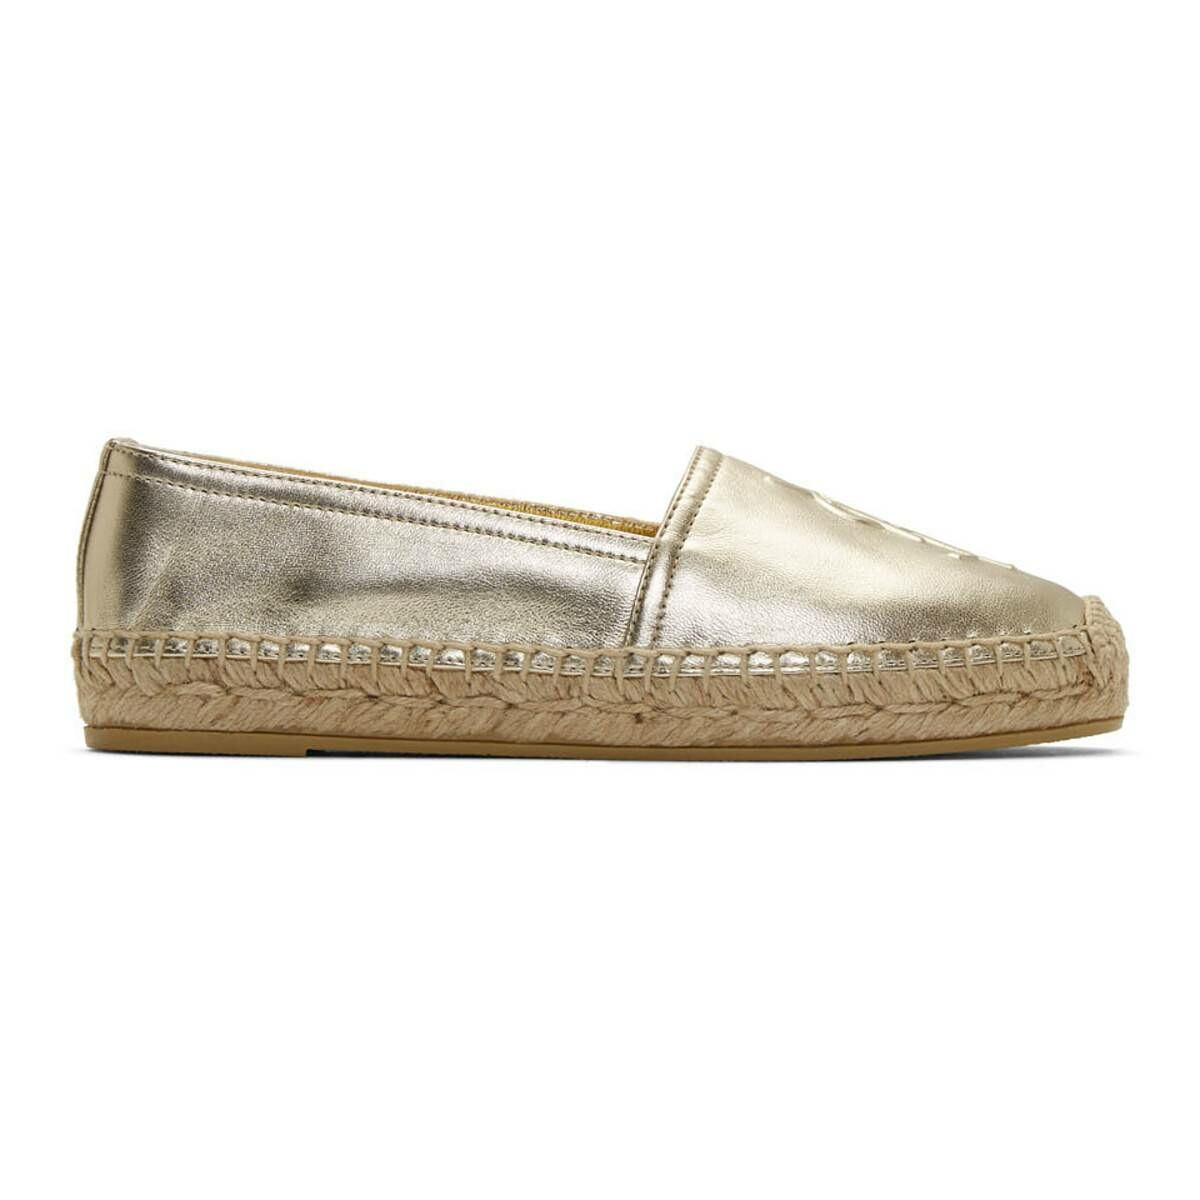 Saint Laurent Gold Monogramme Espadrilles Ssense USA WOMEN Women SHOES Womens FLAT SHOES